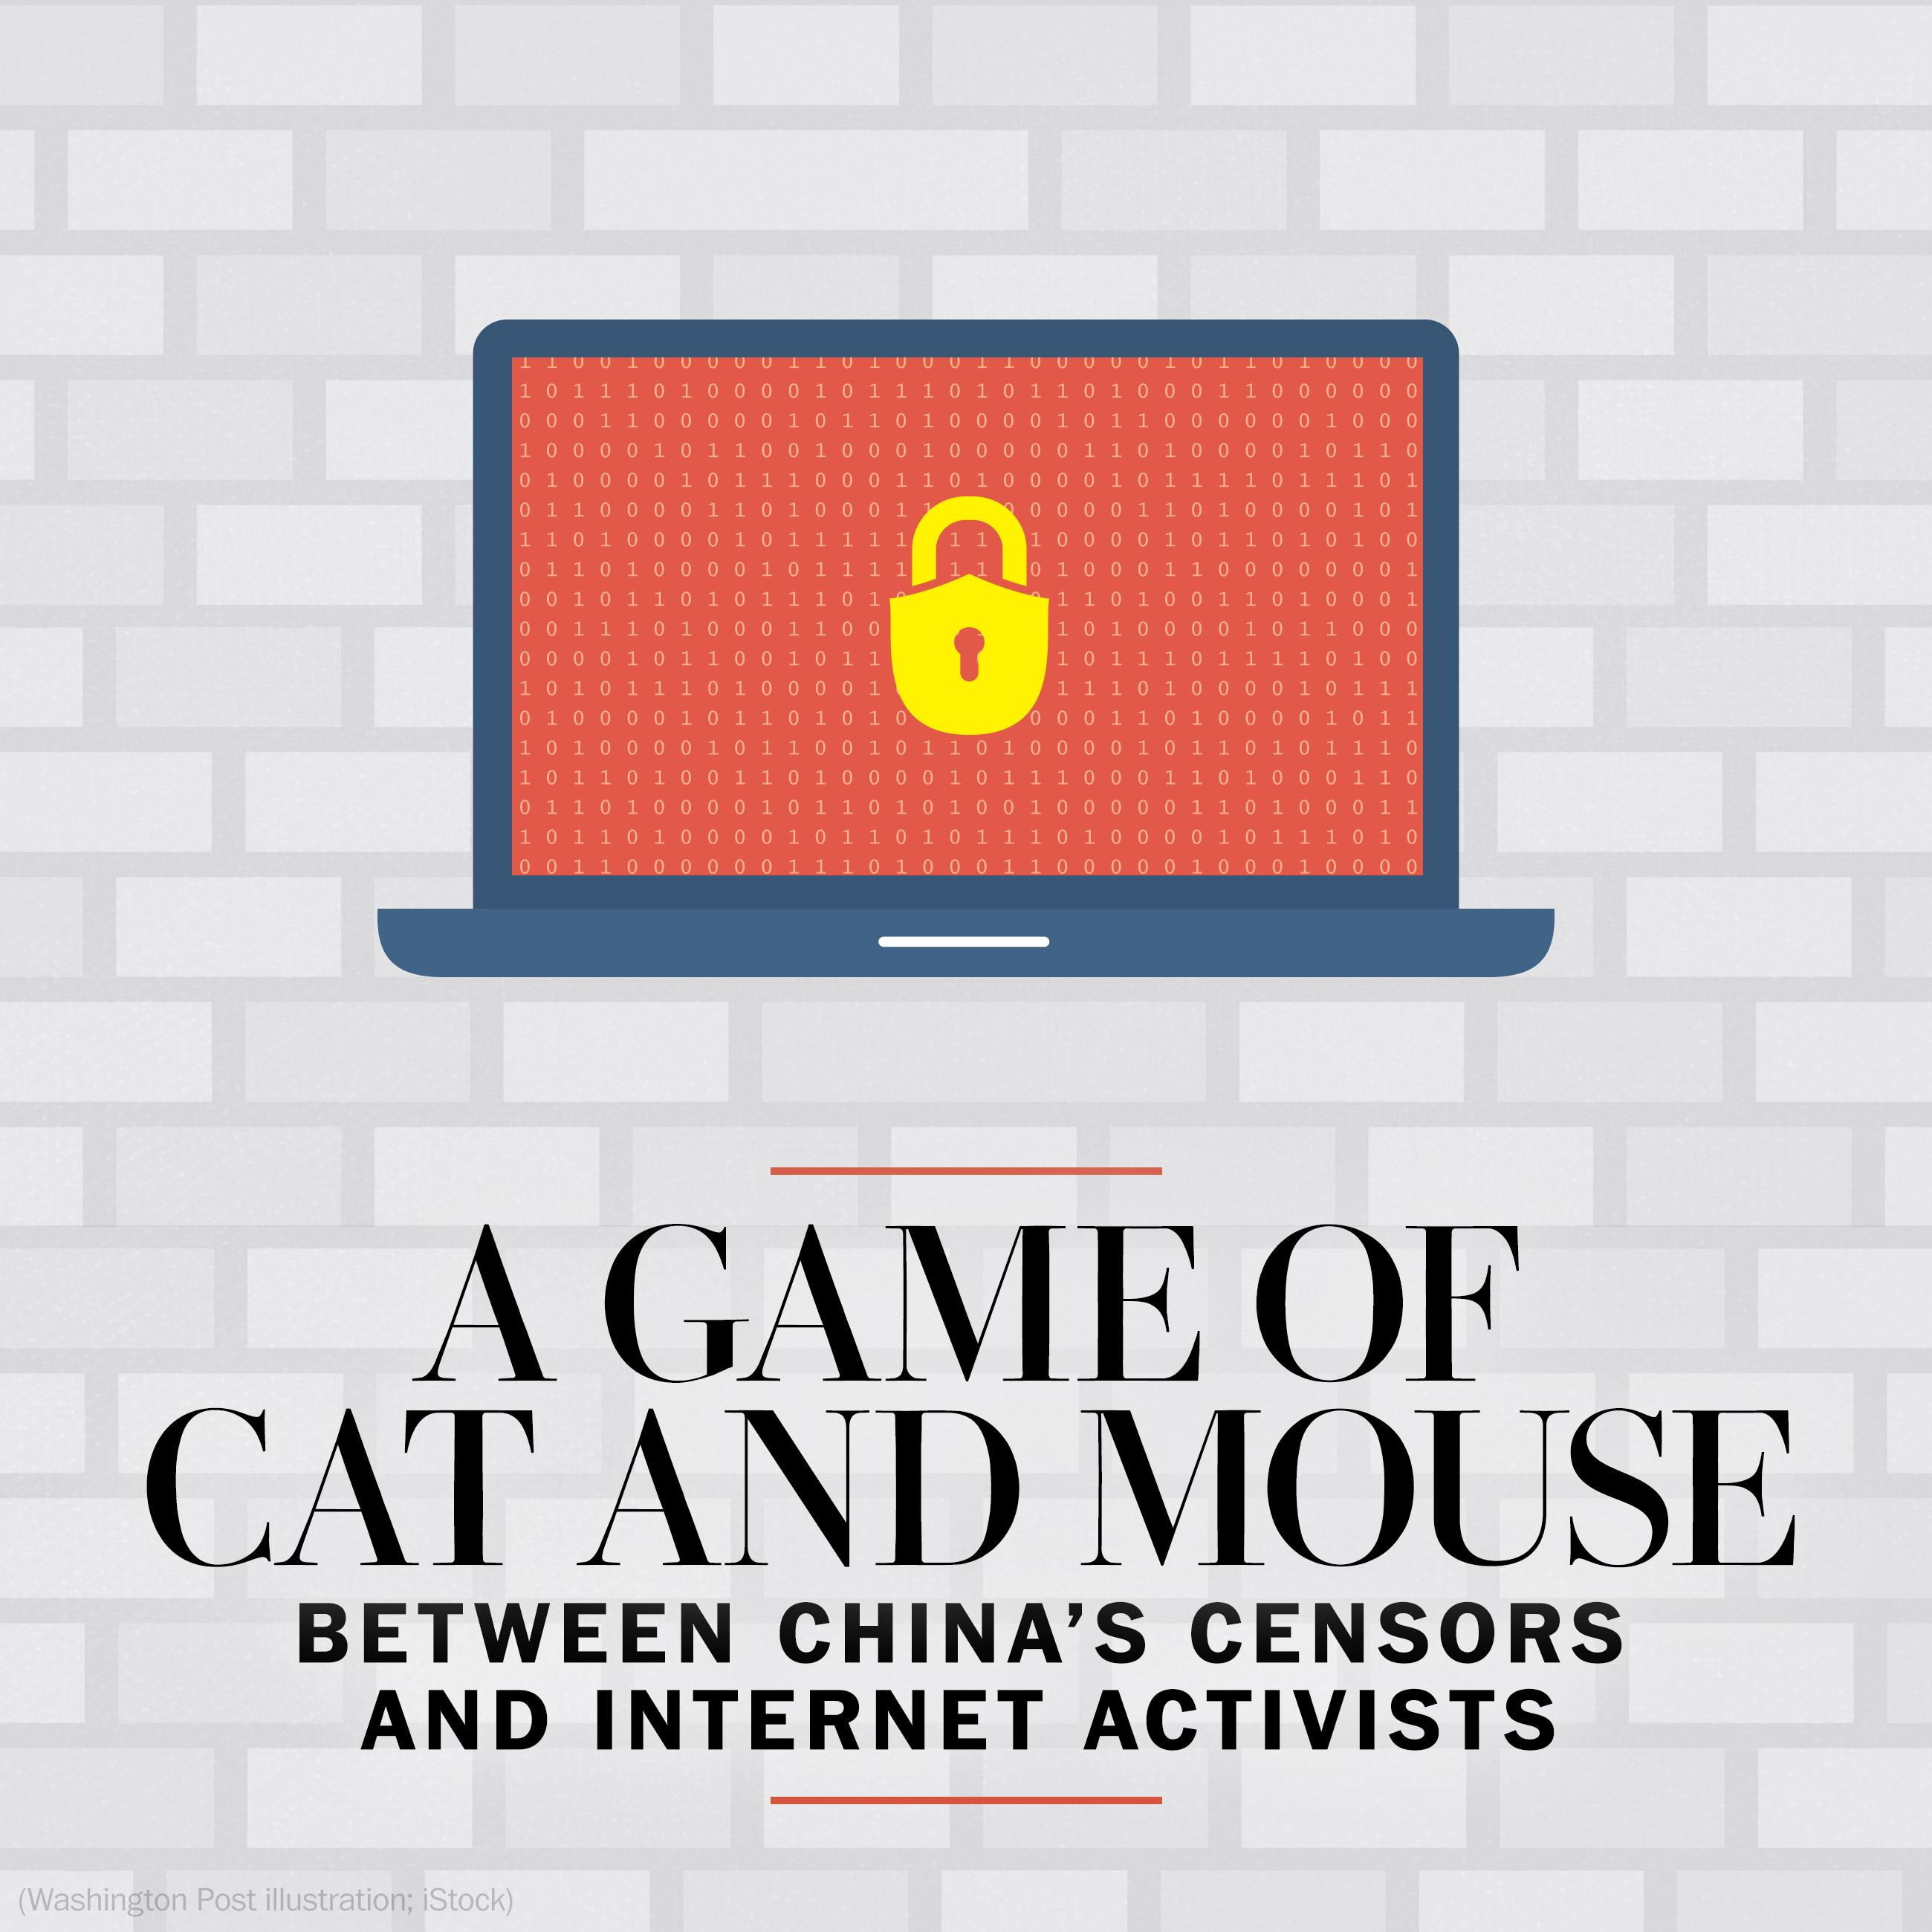 The cat and mouse game between China's censors and Internet activists